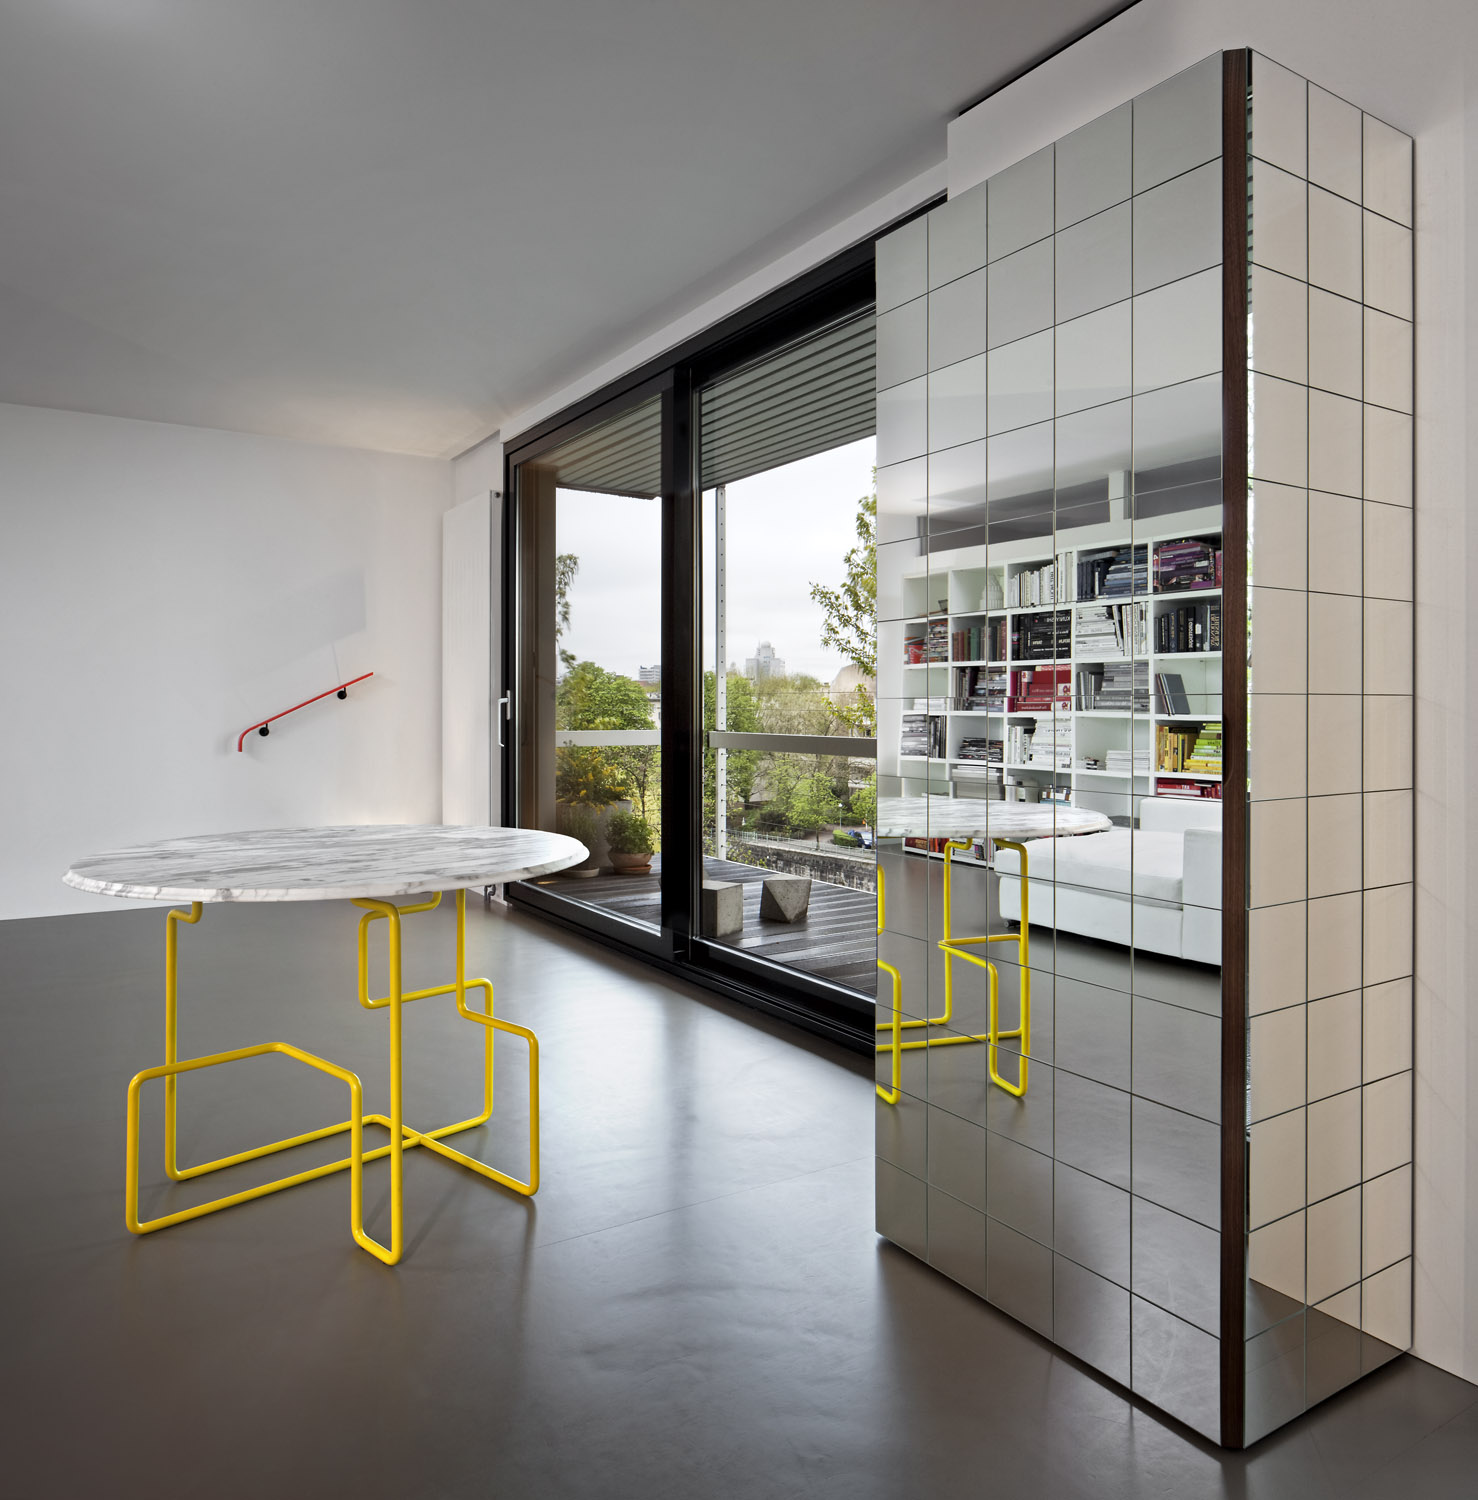 Studio Livius Designer Furniture, Berlin, Germany